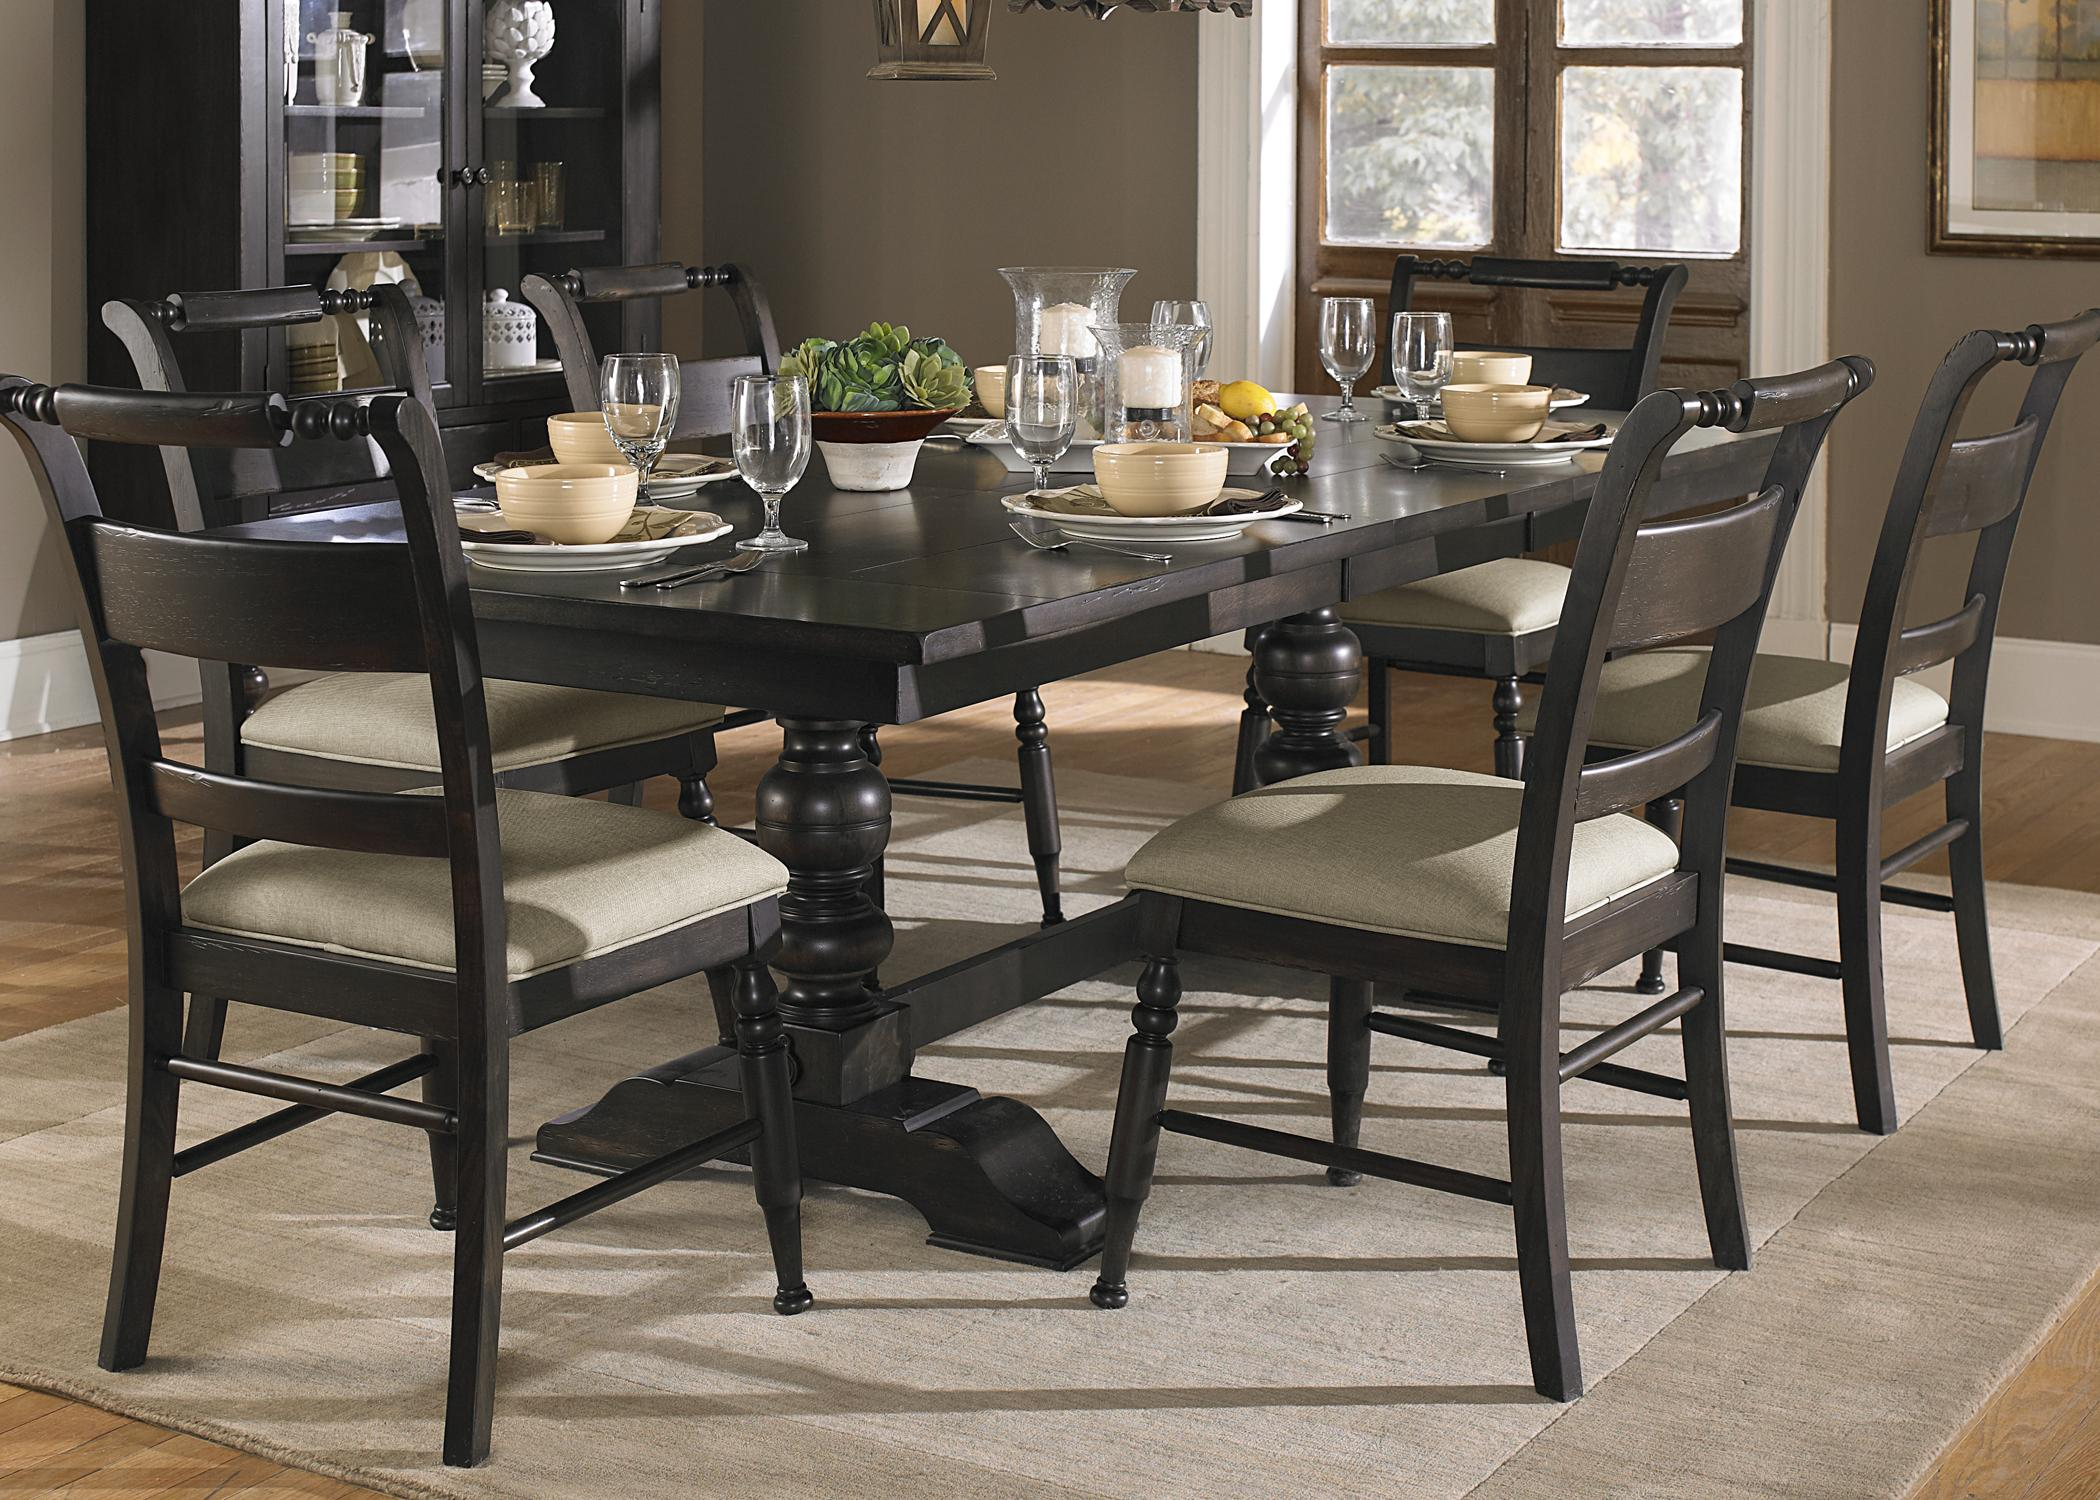 Dining Room Table And Chairs Gorgeous 7 Piece Trestle Dining Room Table Setliberty Furniture  Wolf Inspiration